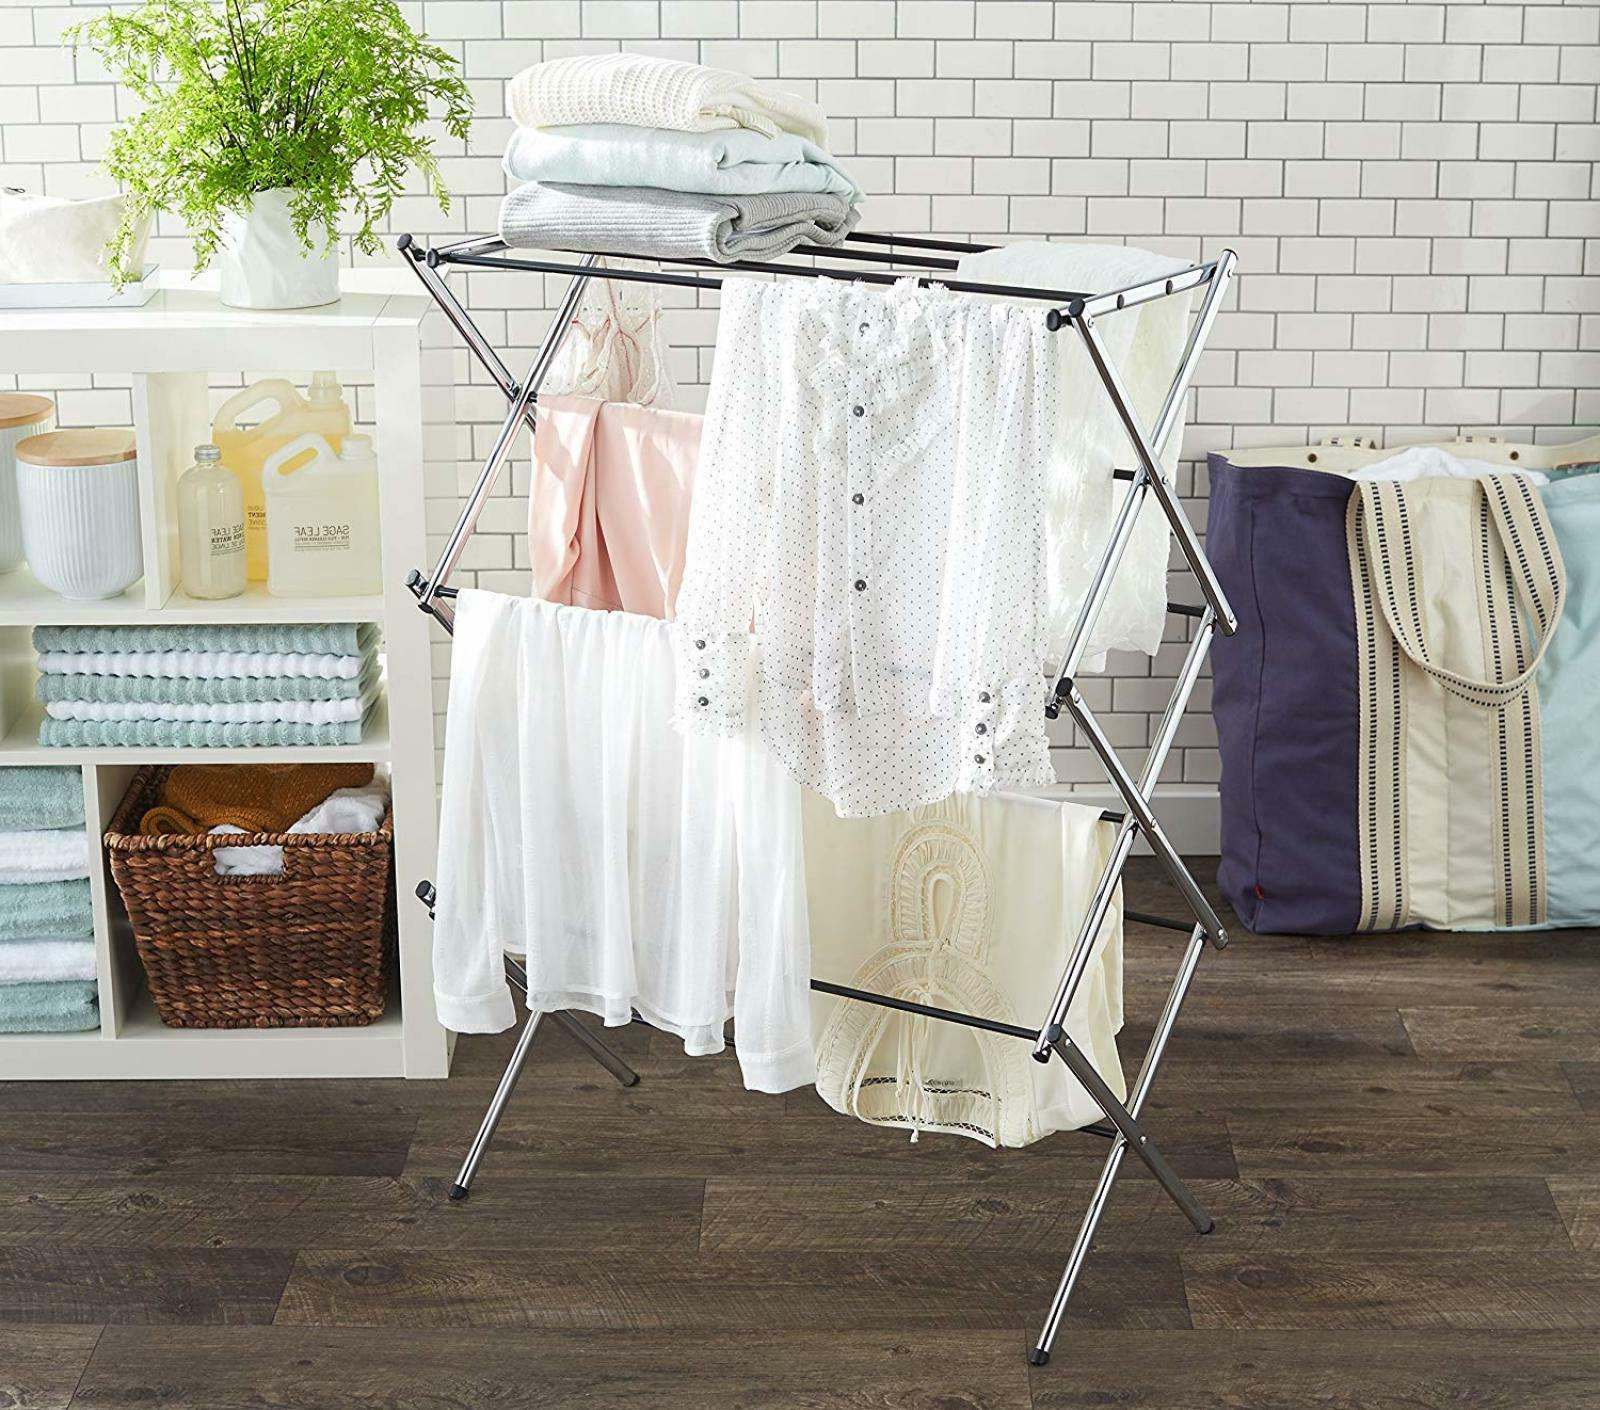 AmazonBasics Foldable Drying For And Gentle Chrome